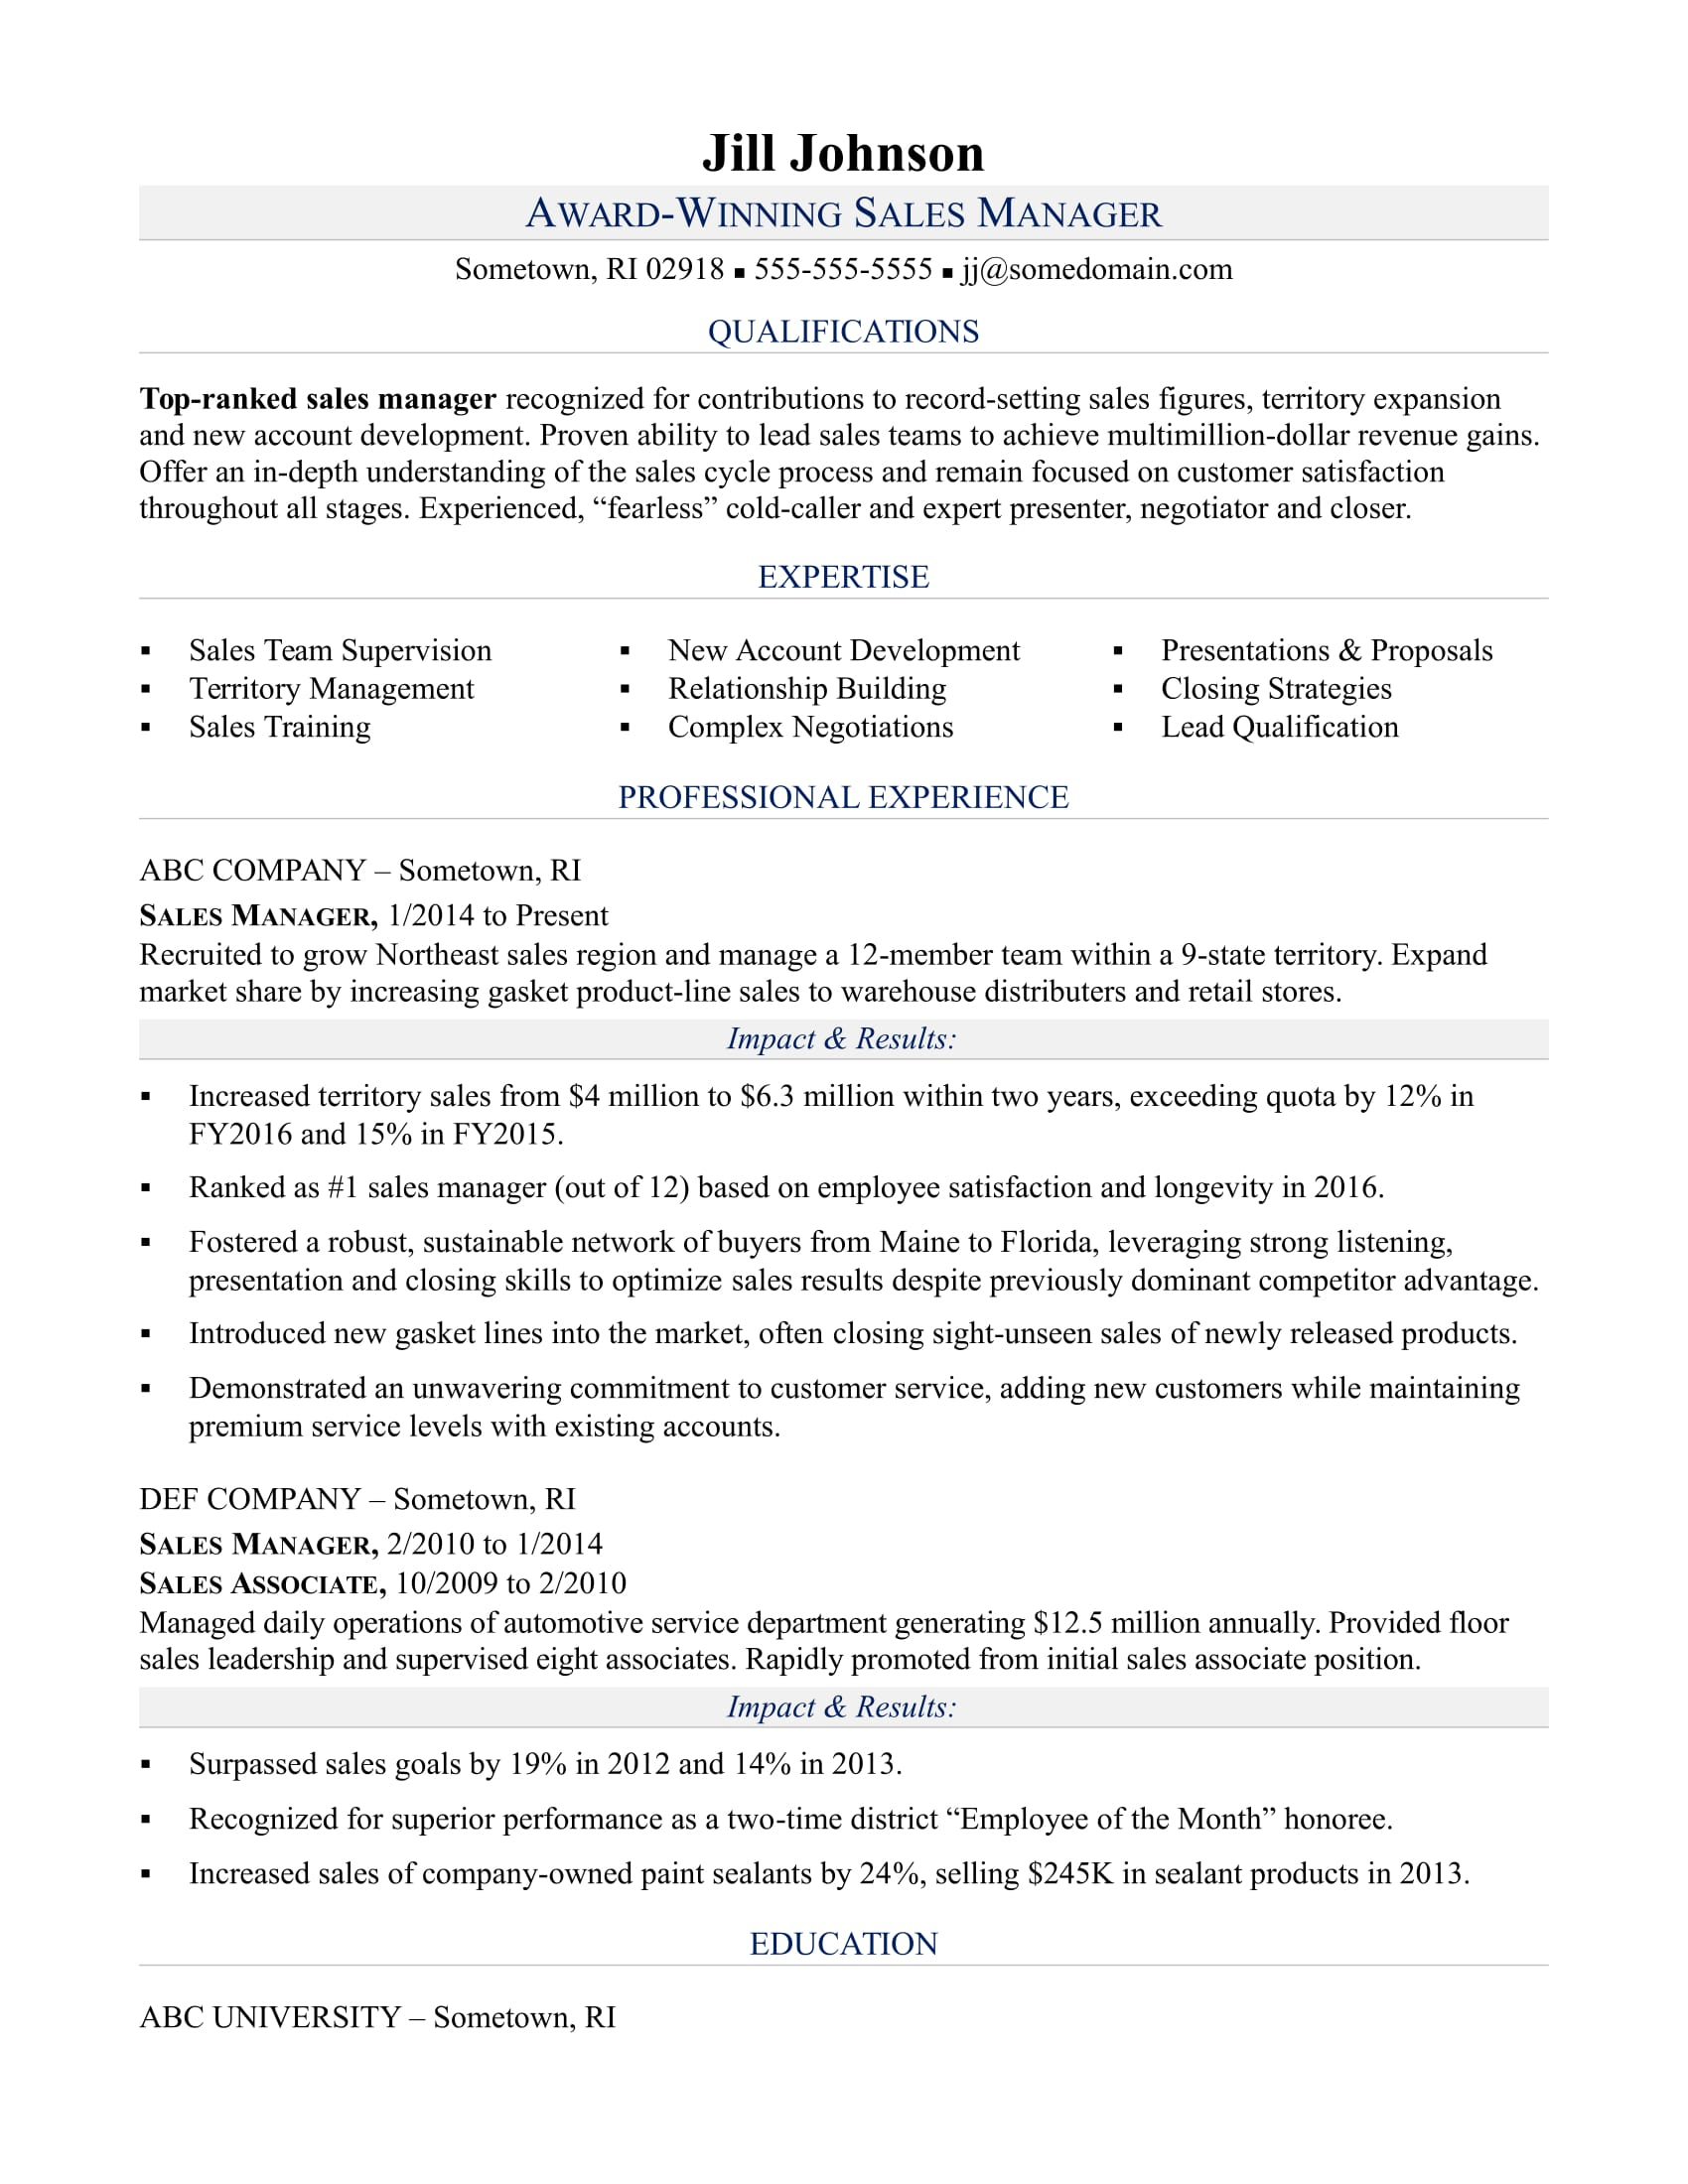 Sample Resume For A Sales Manager  Winning Resume Samples